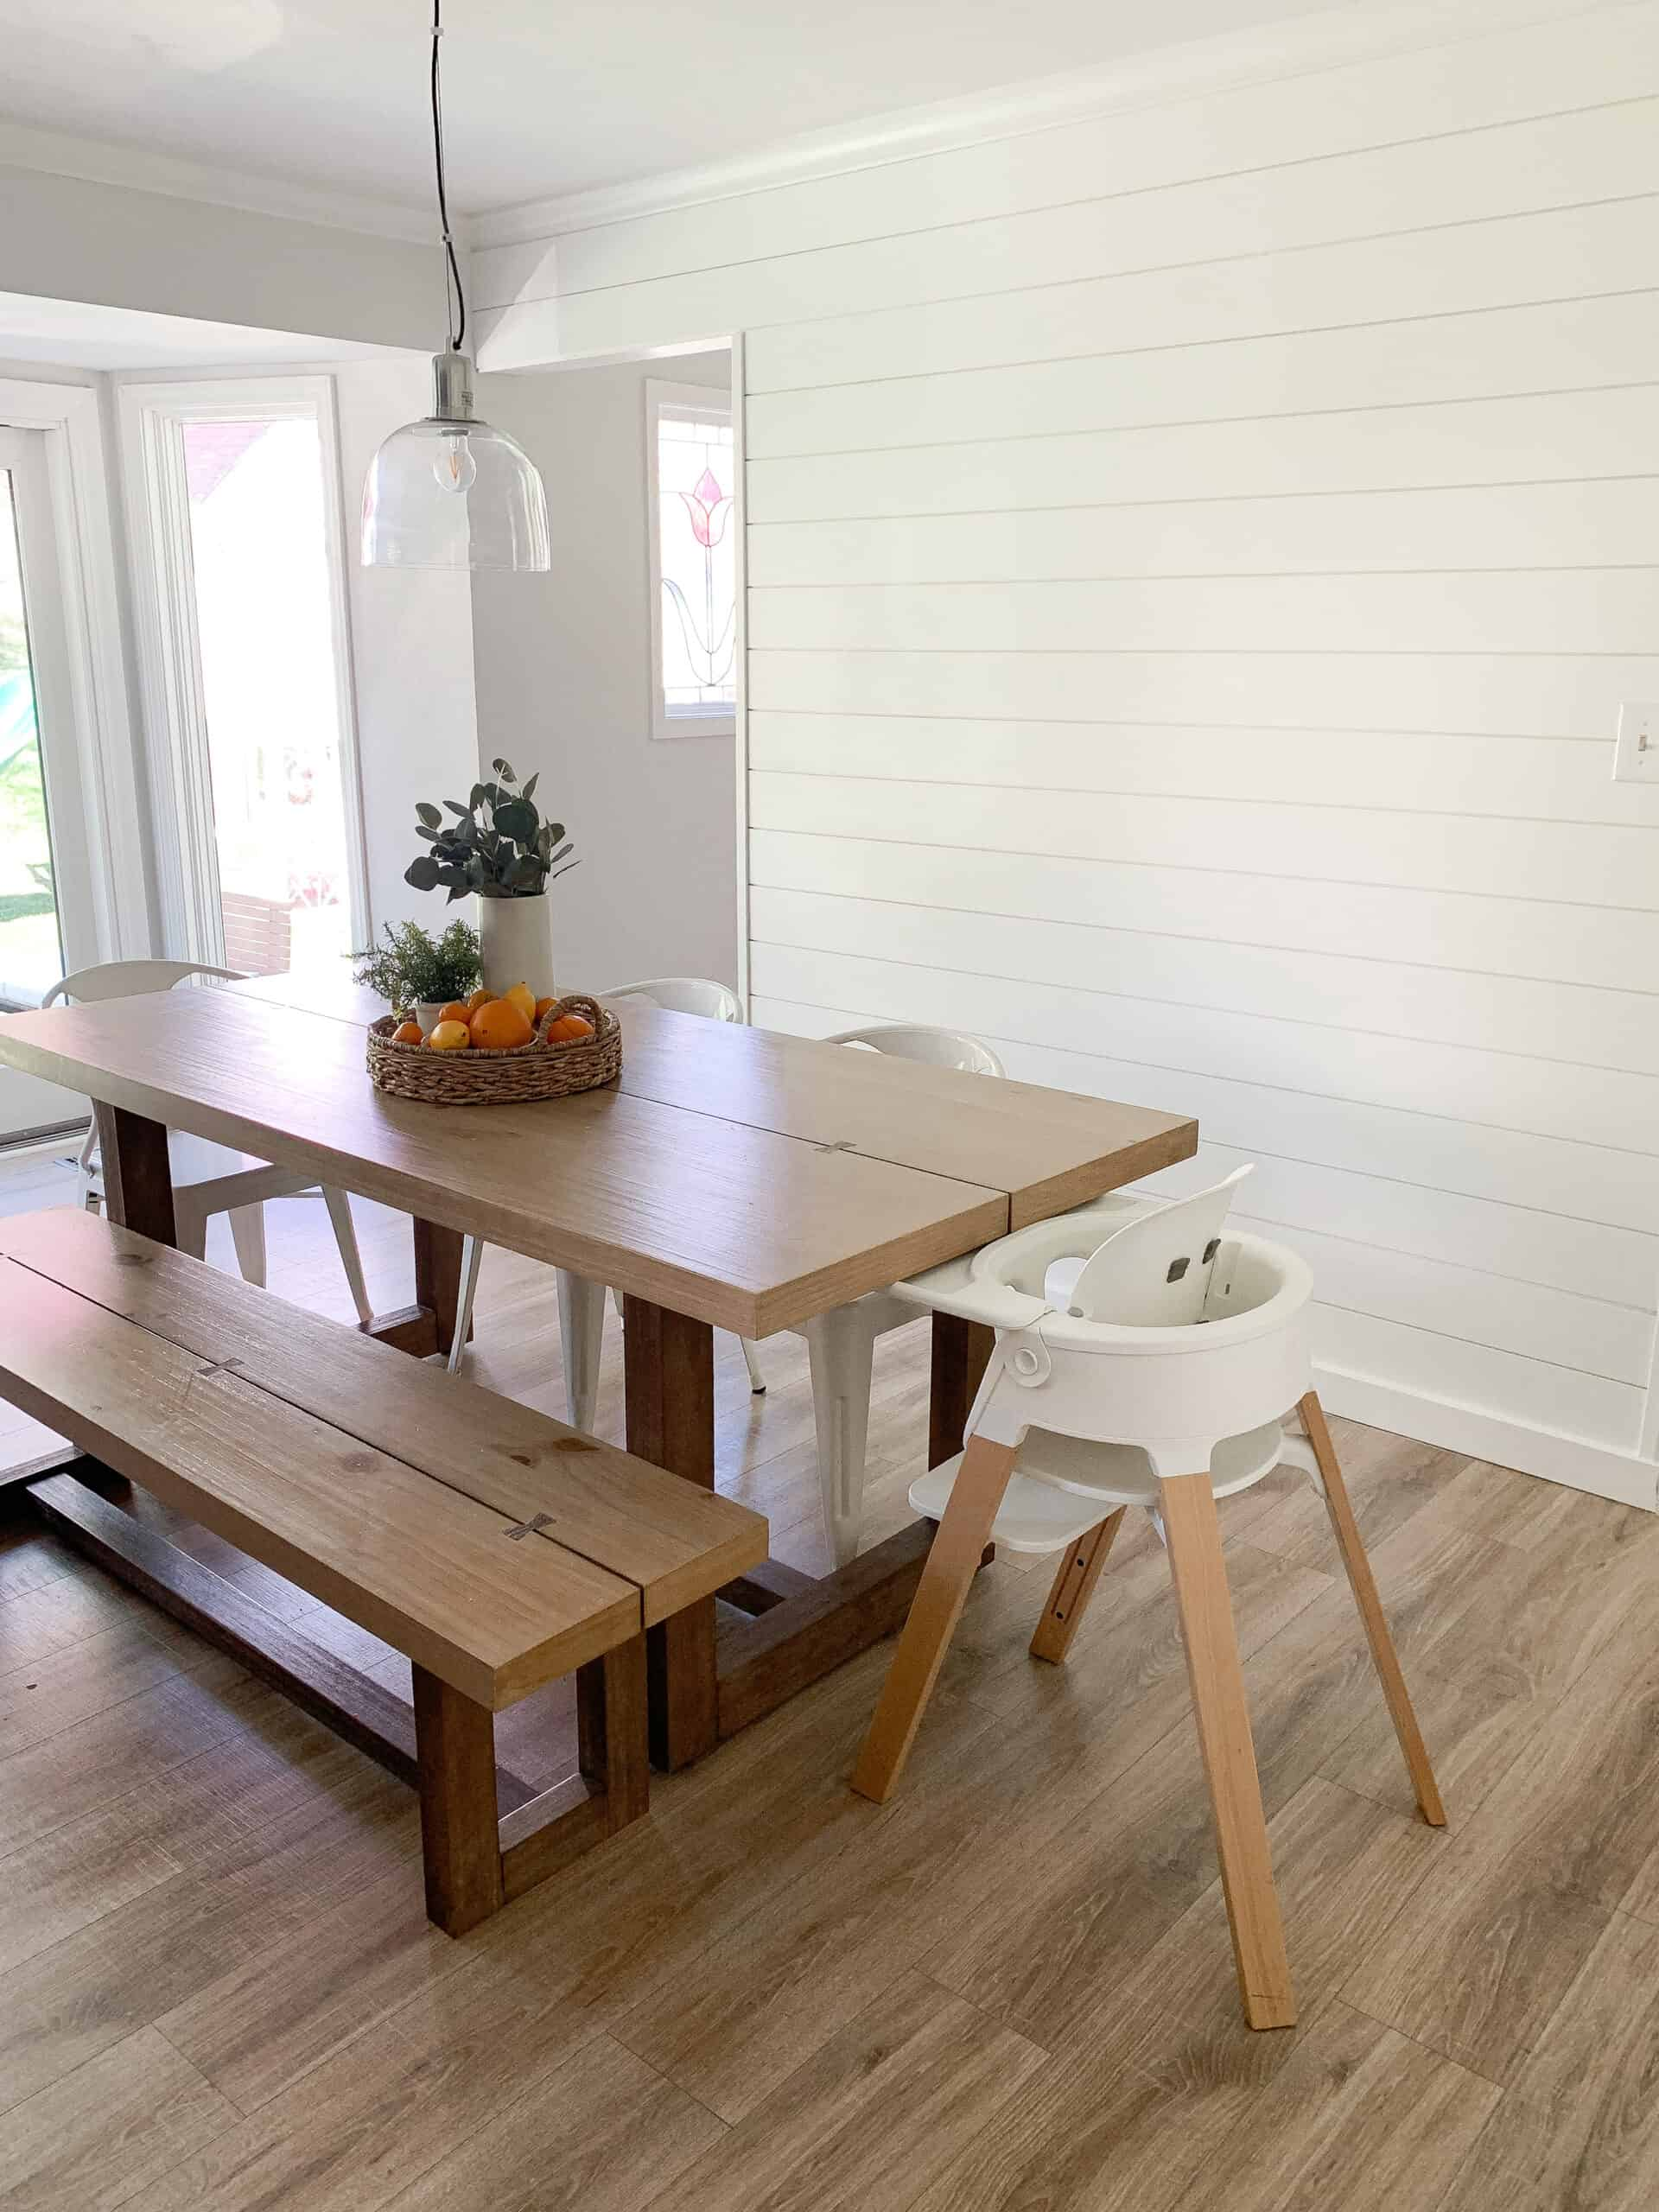 Kitchen with DIY shiplap wall